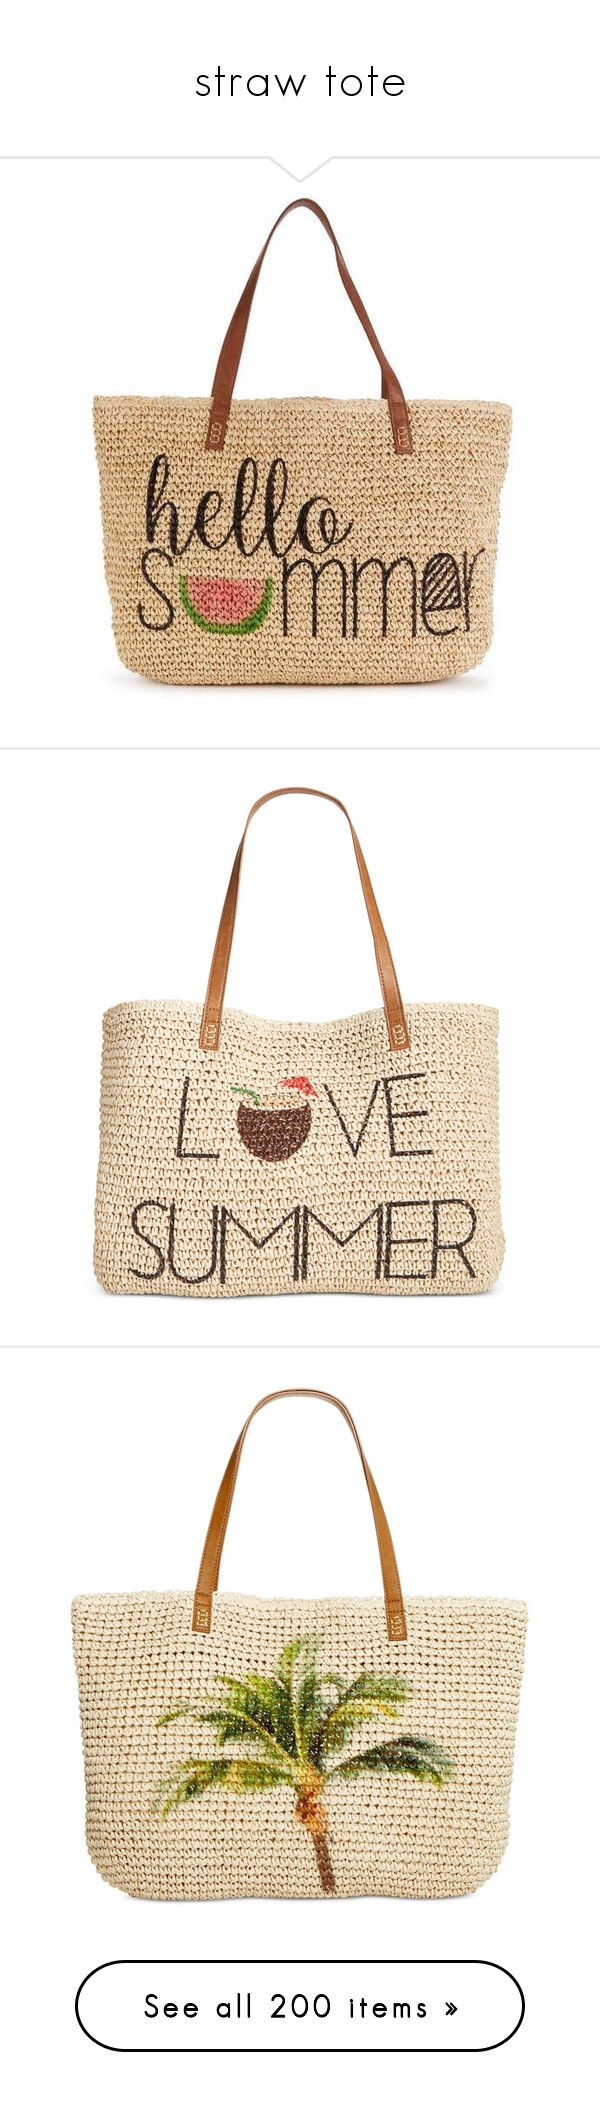 """""""straw tote"""" by countrycousin ❤ liked on Polyvore featuring bags, handbags, tote bags, tote handbags, beige purse, beige handbags, beige tote bag, tote bag purse, purses and beach"""